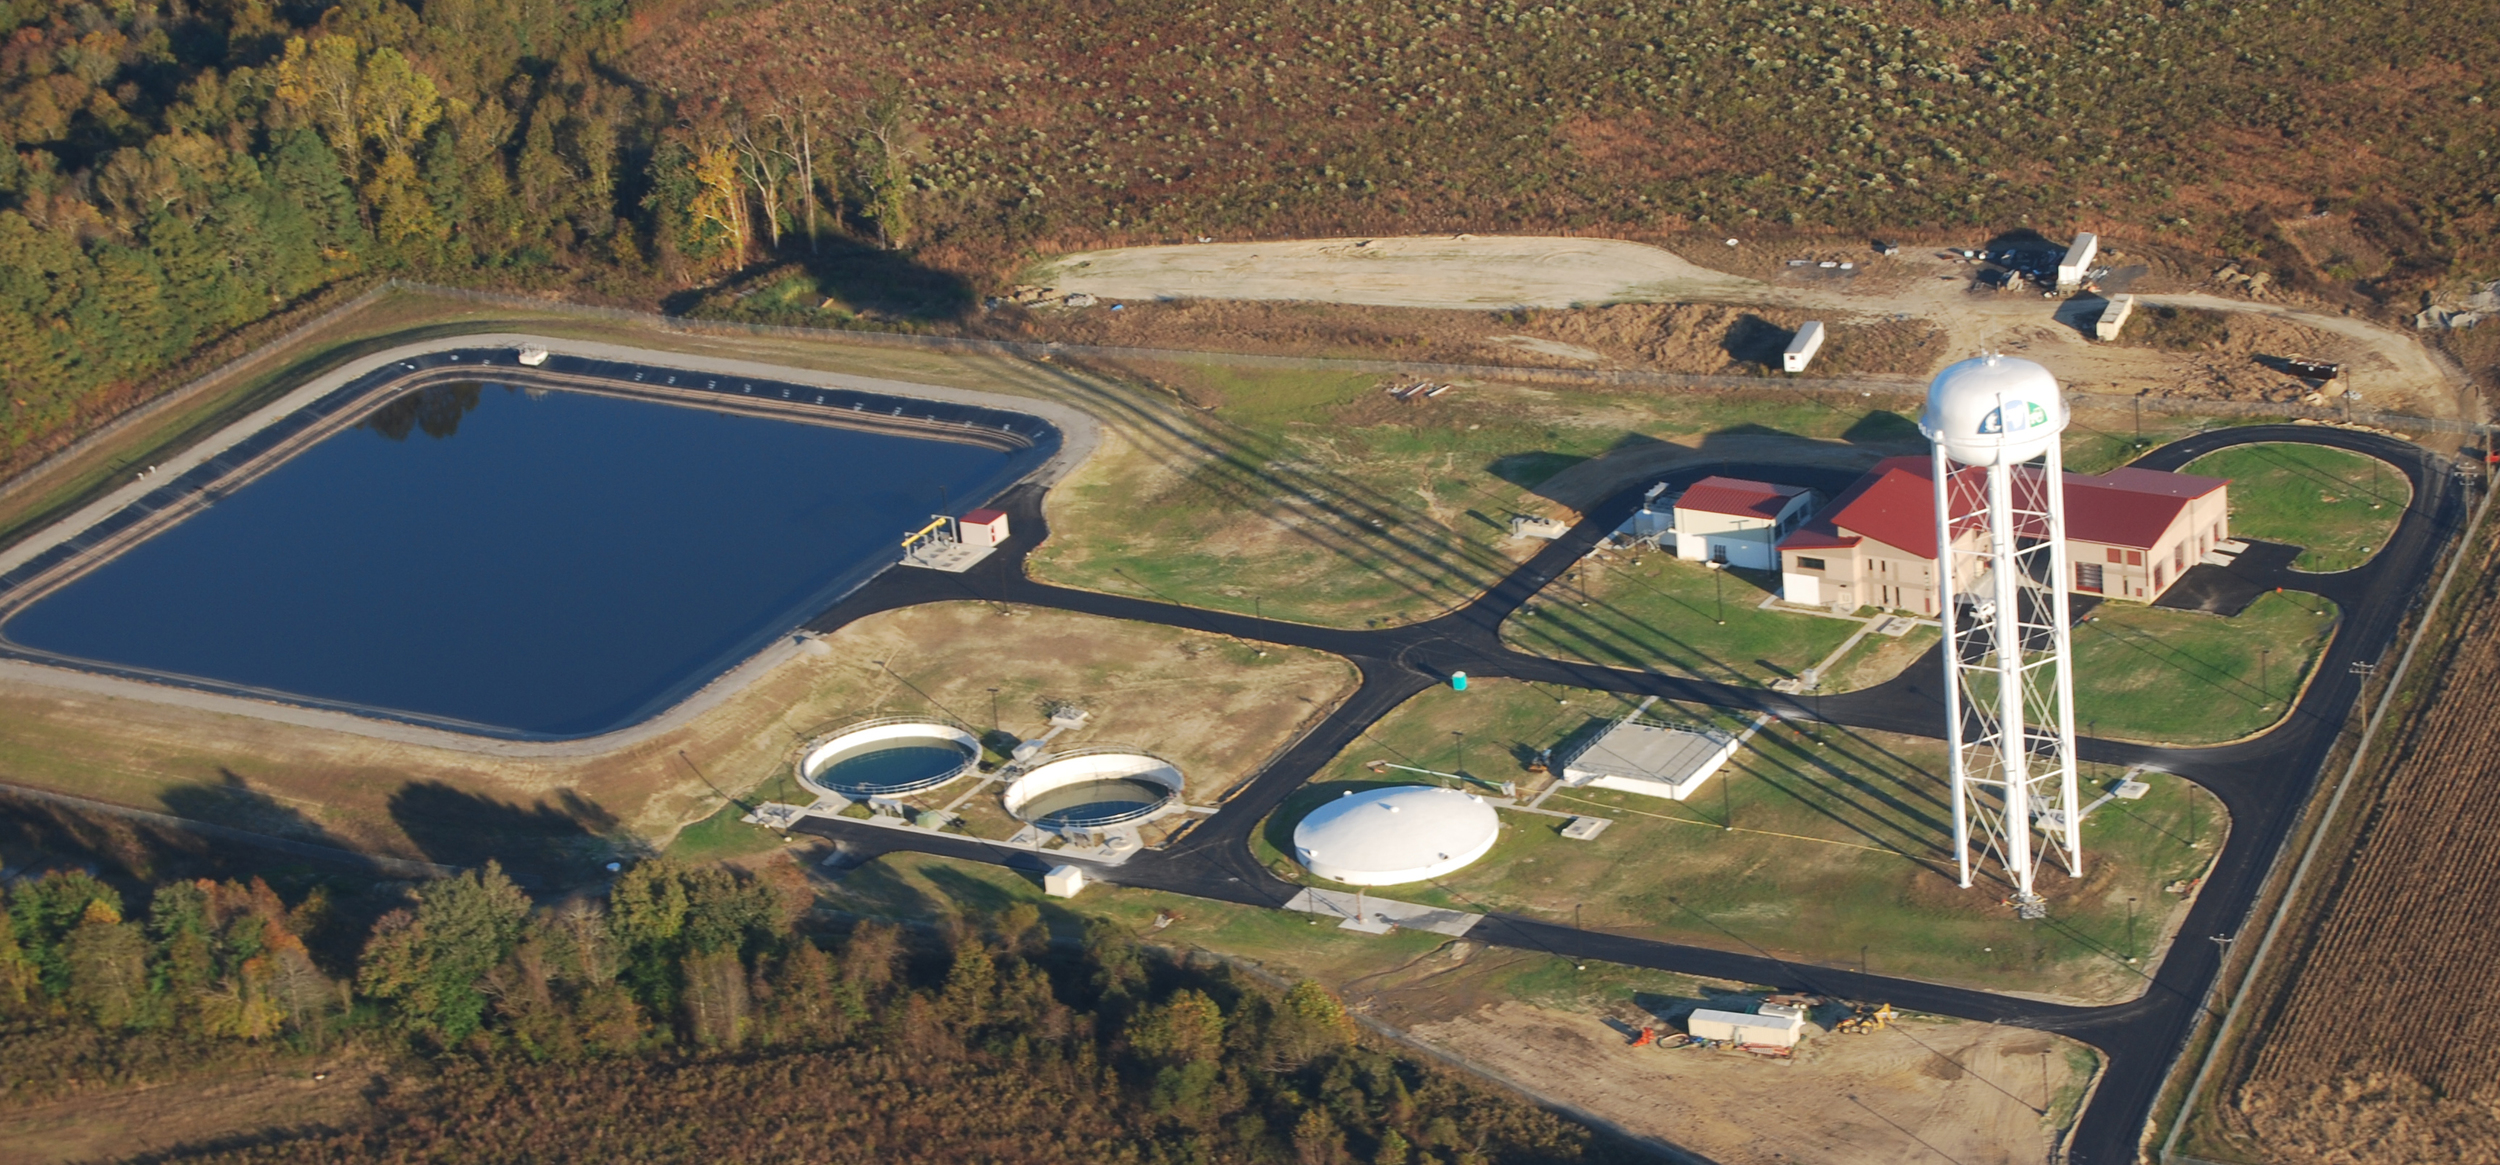 MCRWASA_3104 G_NEW WATER TREATMENT PLANT_2015_CIV_0001.JPG